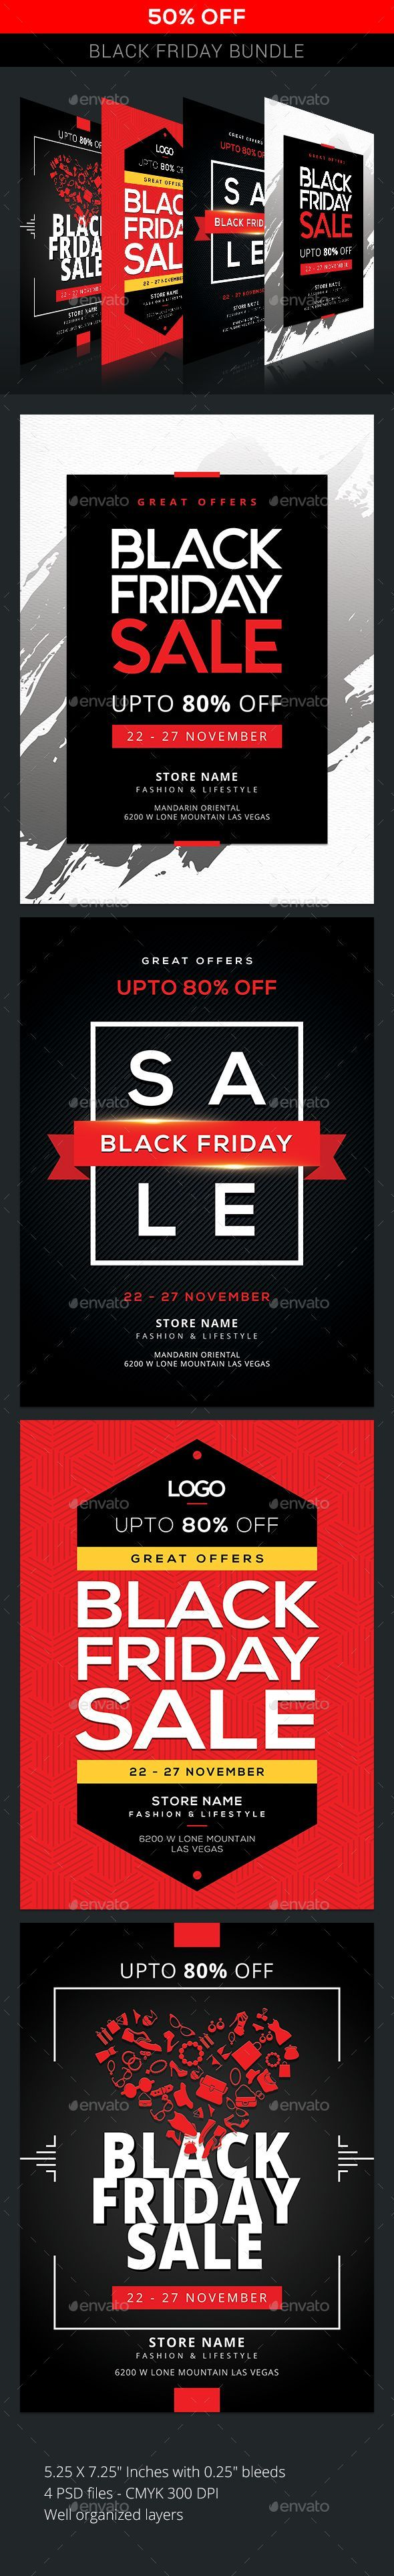 4 Black Friday Flyer Templates PSD, Black